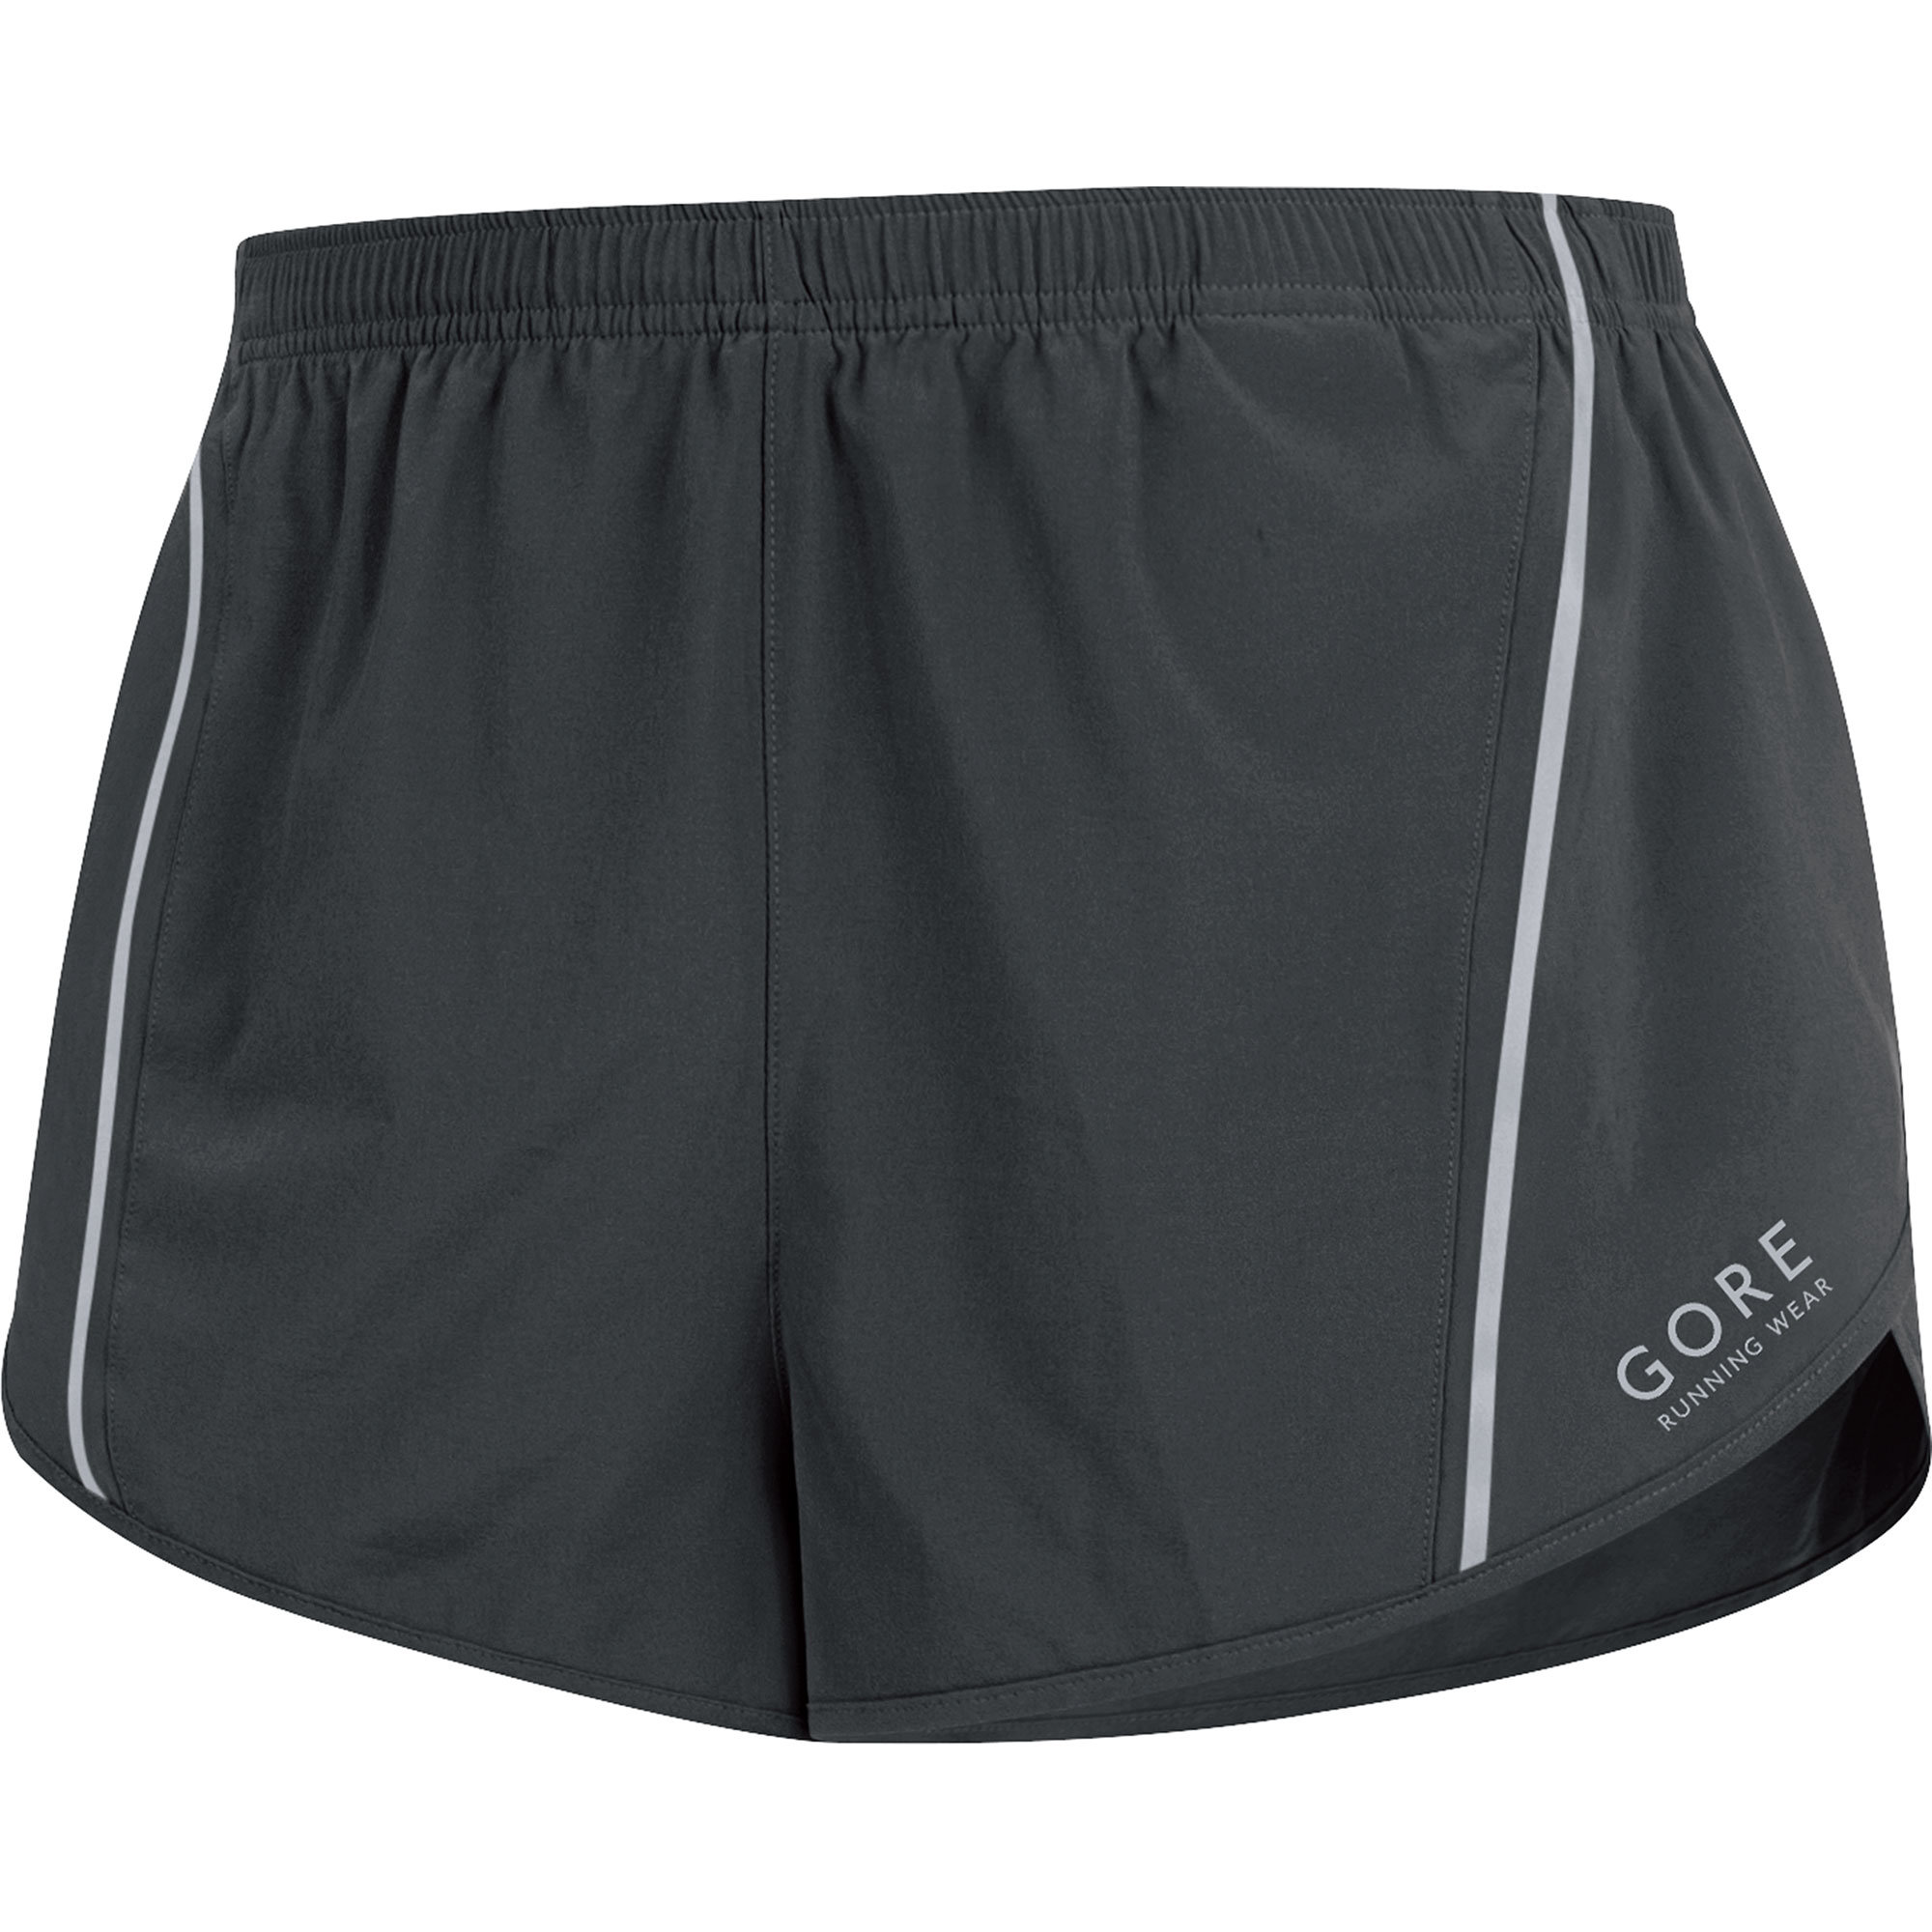 Gore Mythos 3.0 Split Shorts